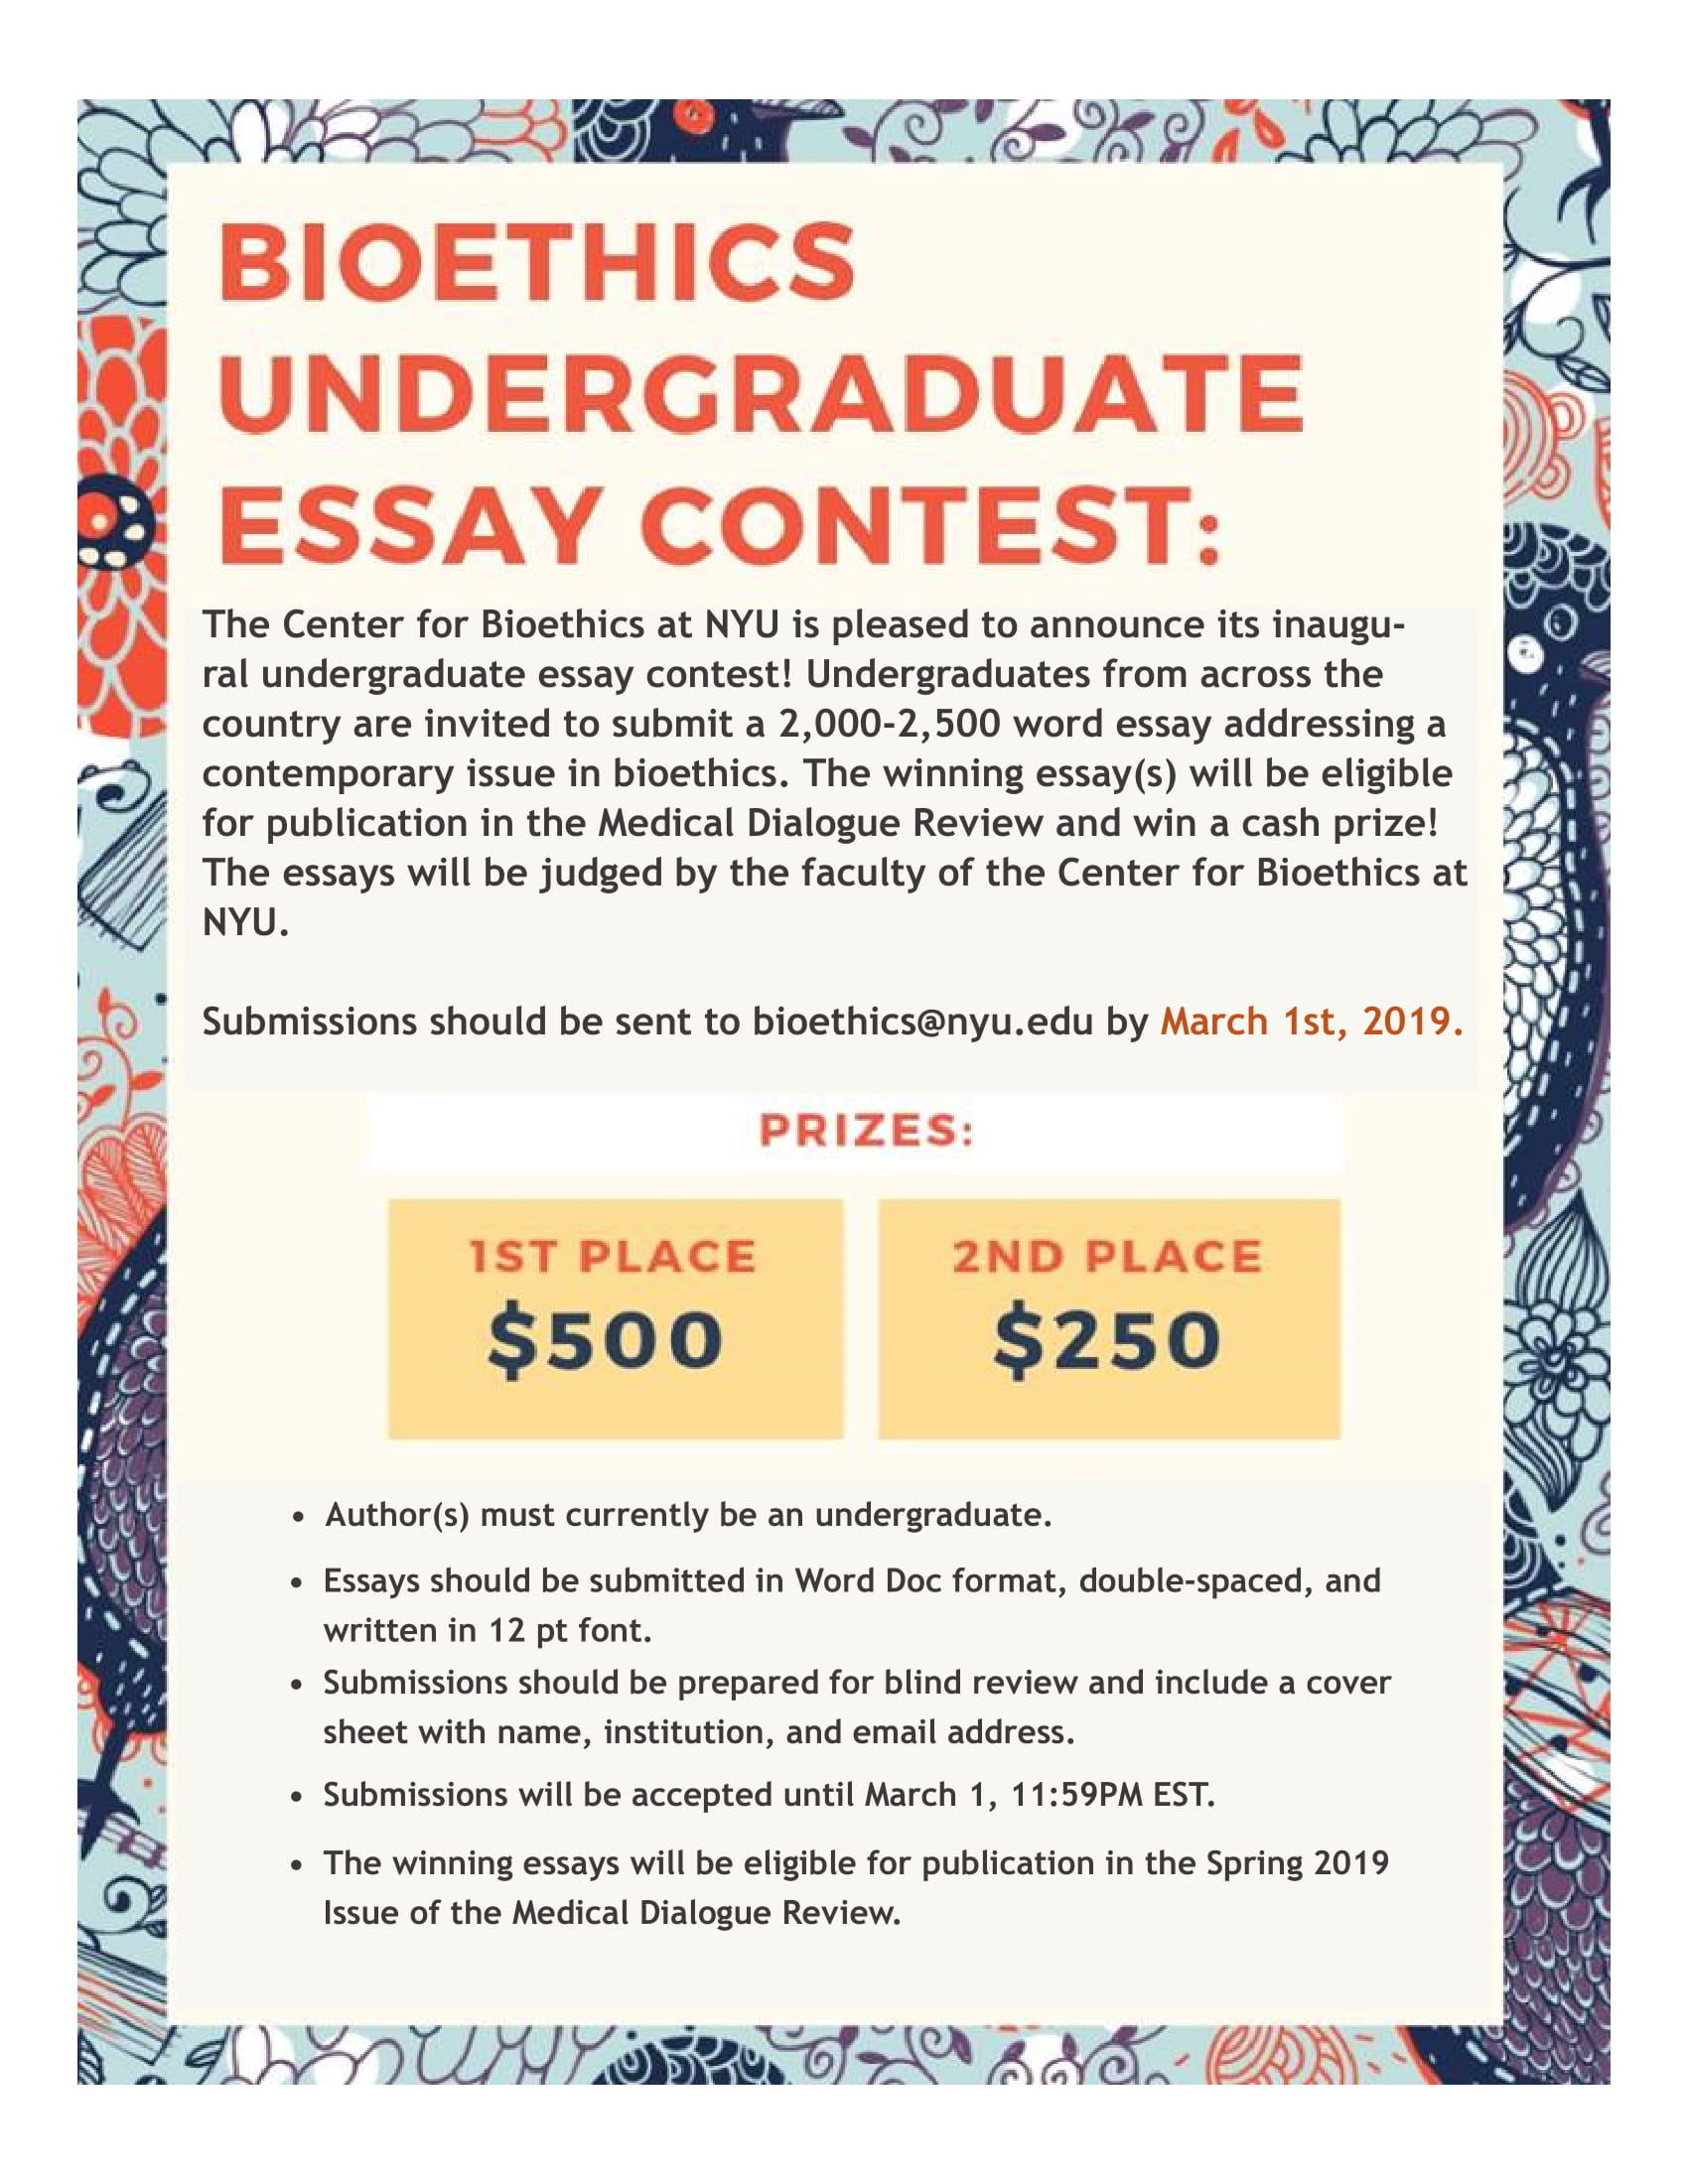 Bioethics Essay Contest Flier